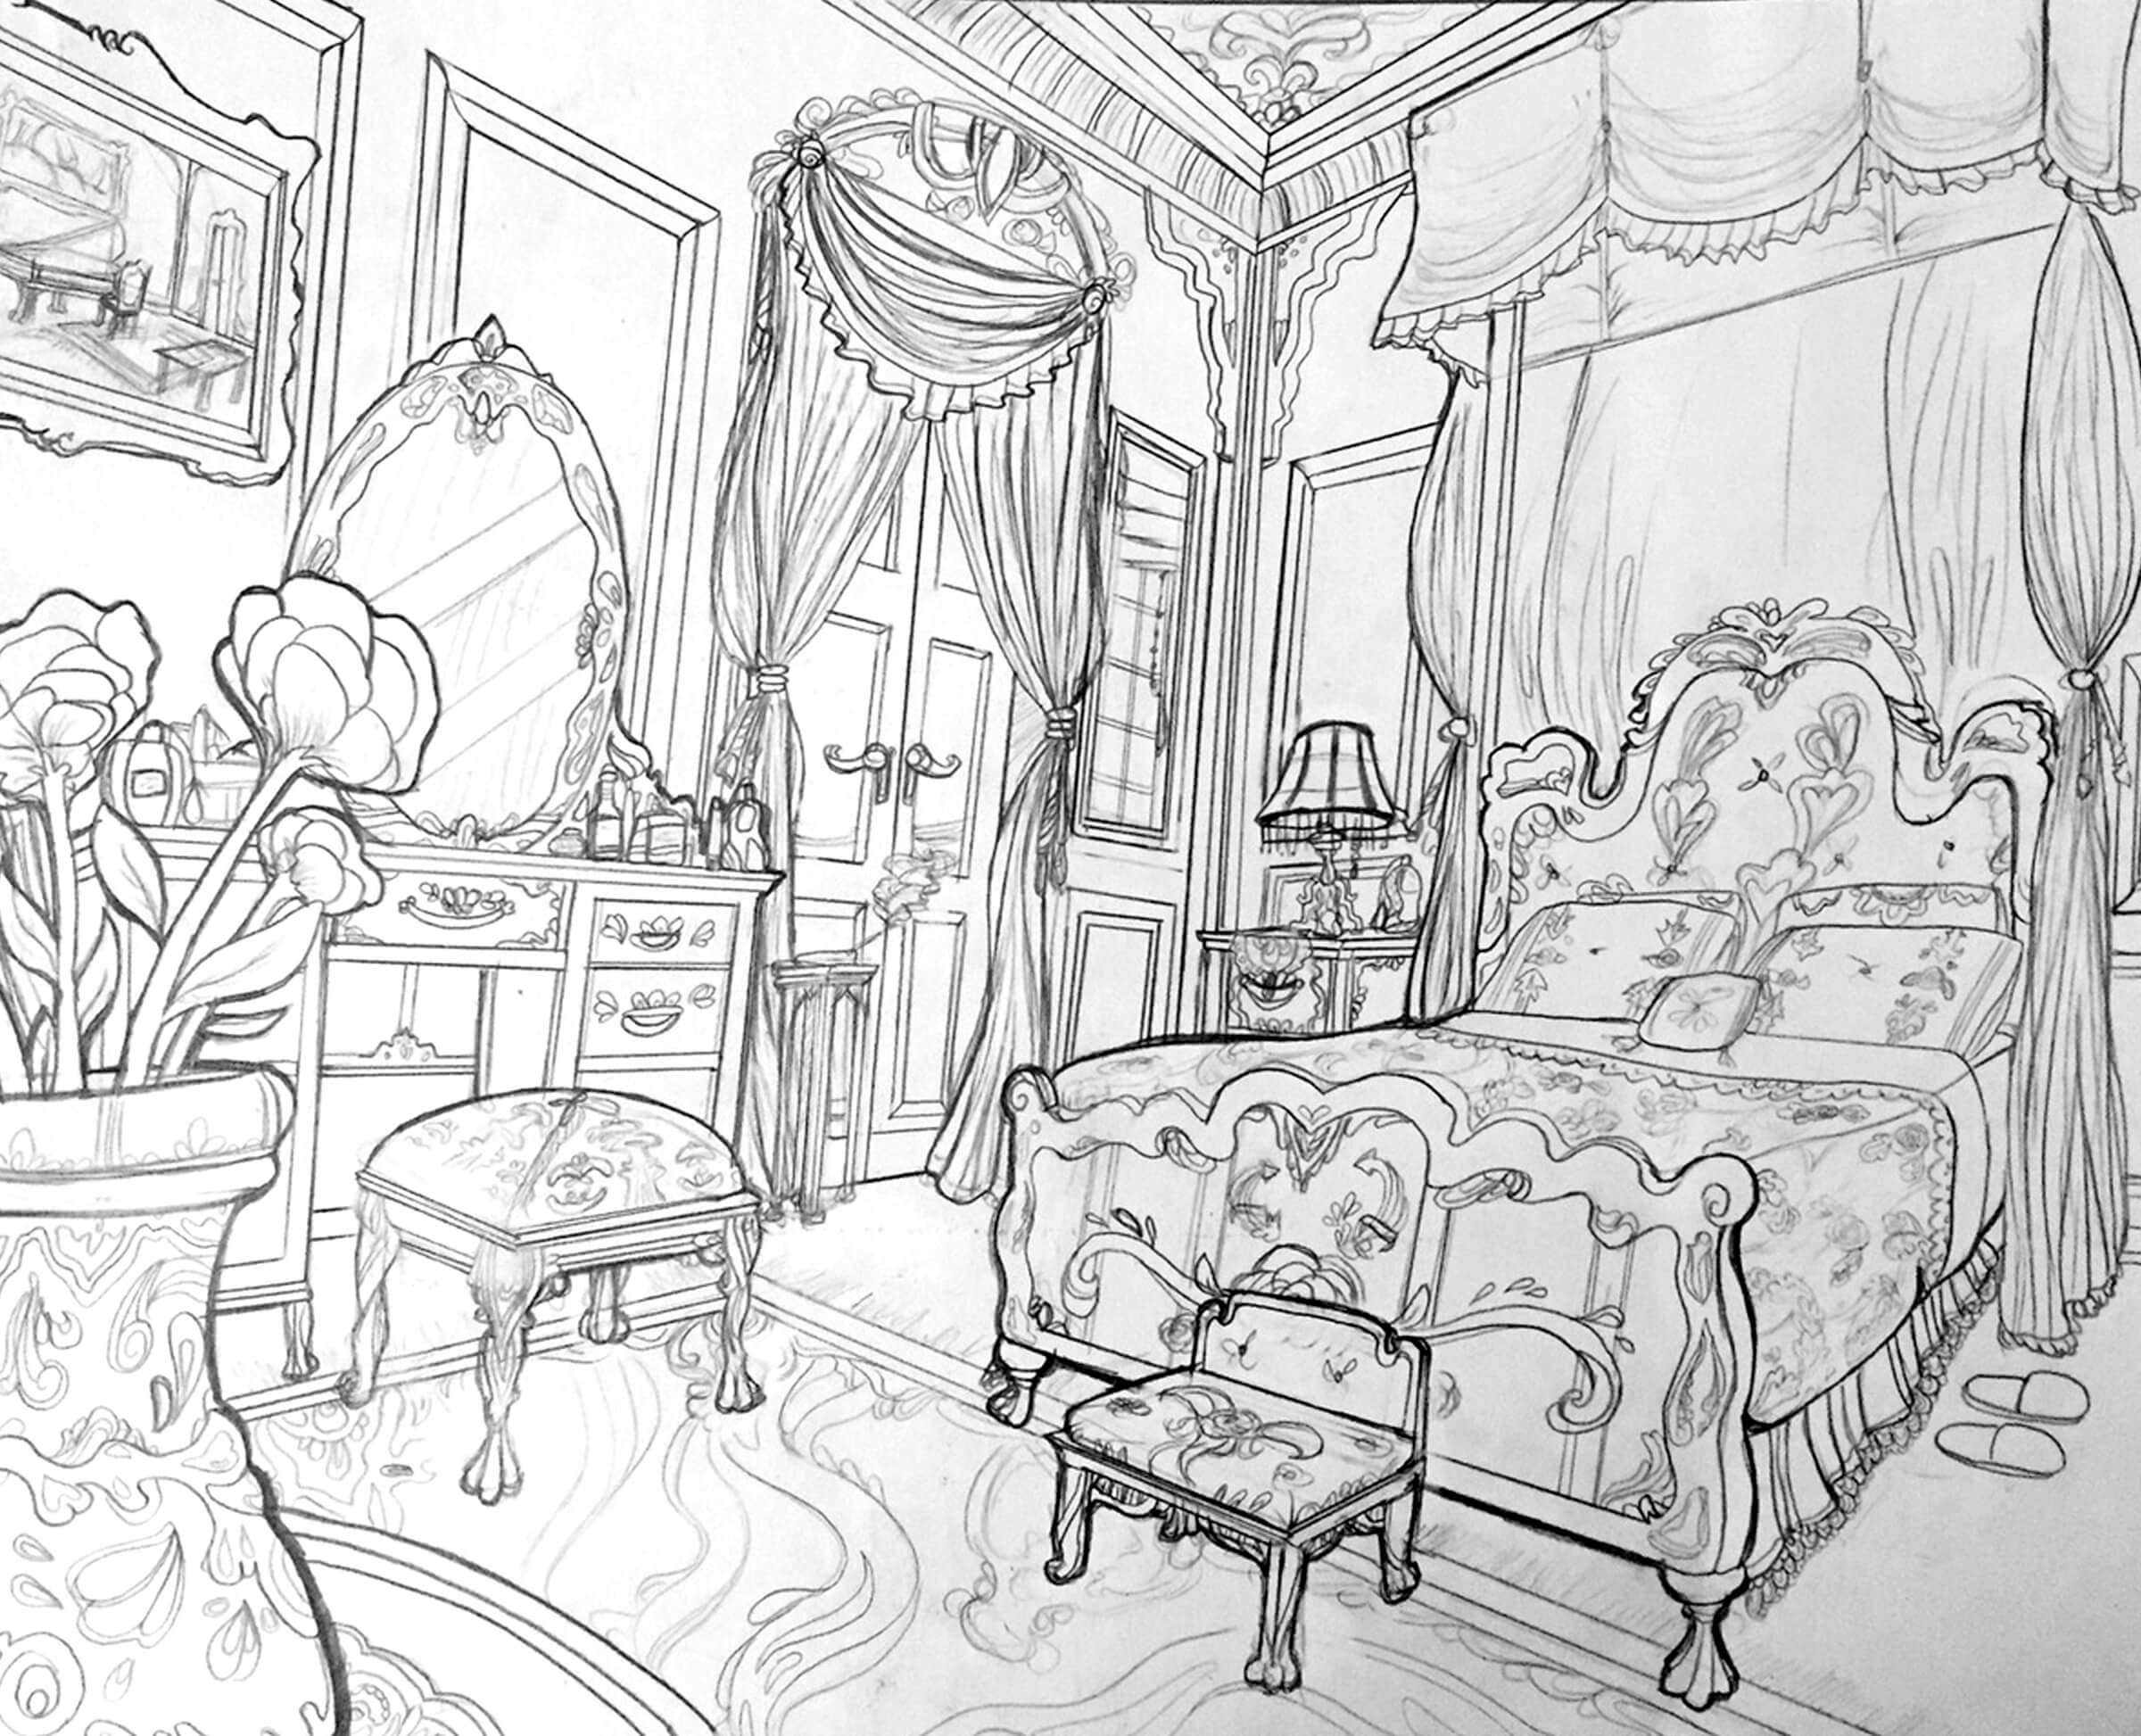 perspective drawing of an elaborate bedroom with swags of fabric, ornate furniture, and a vase filled with flowers